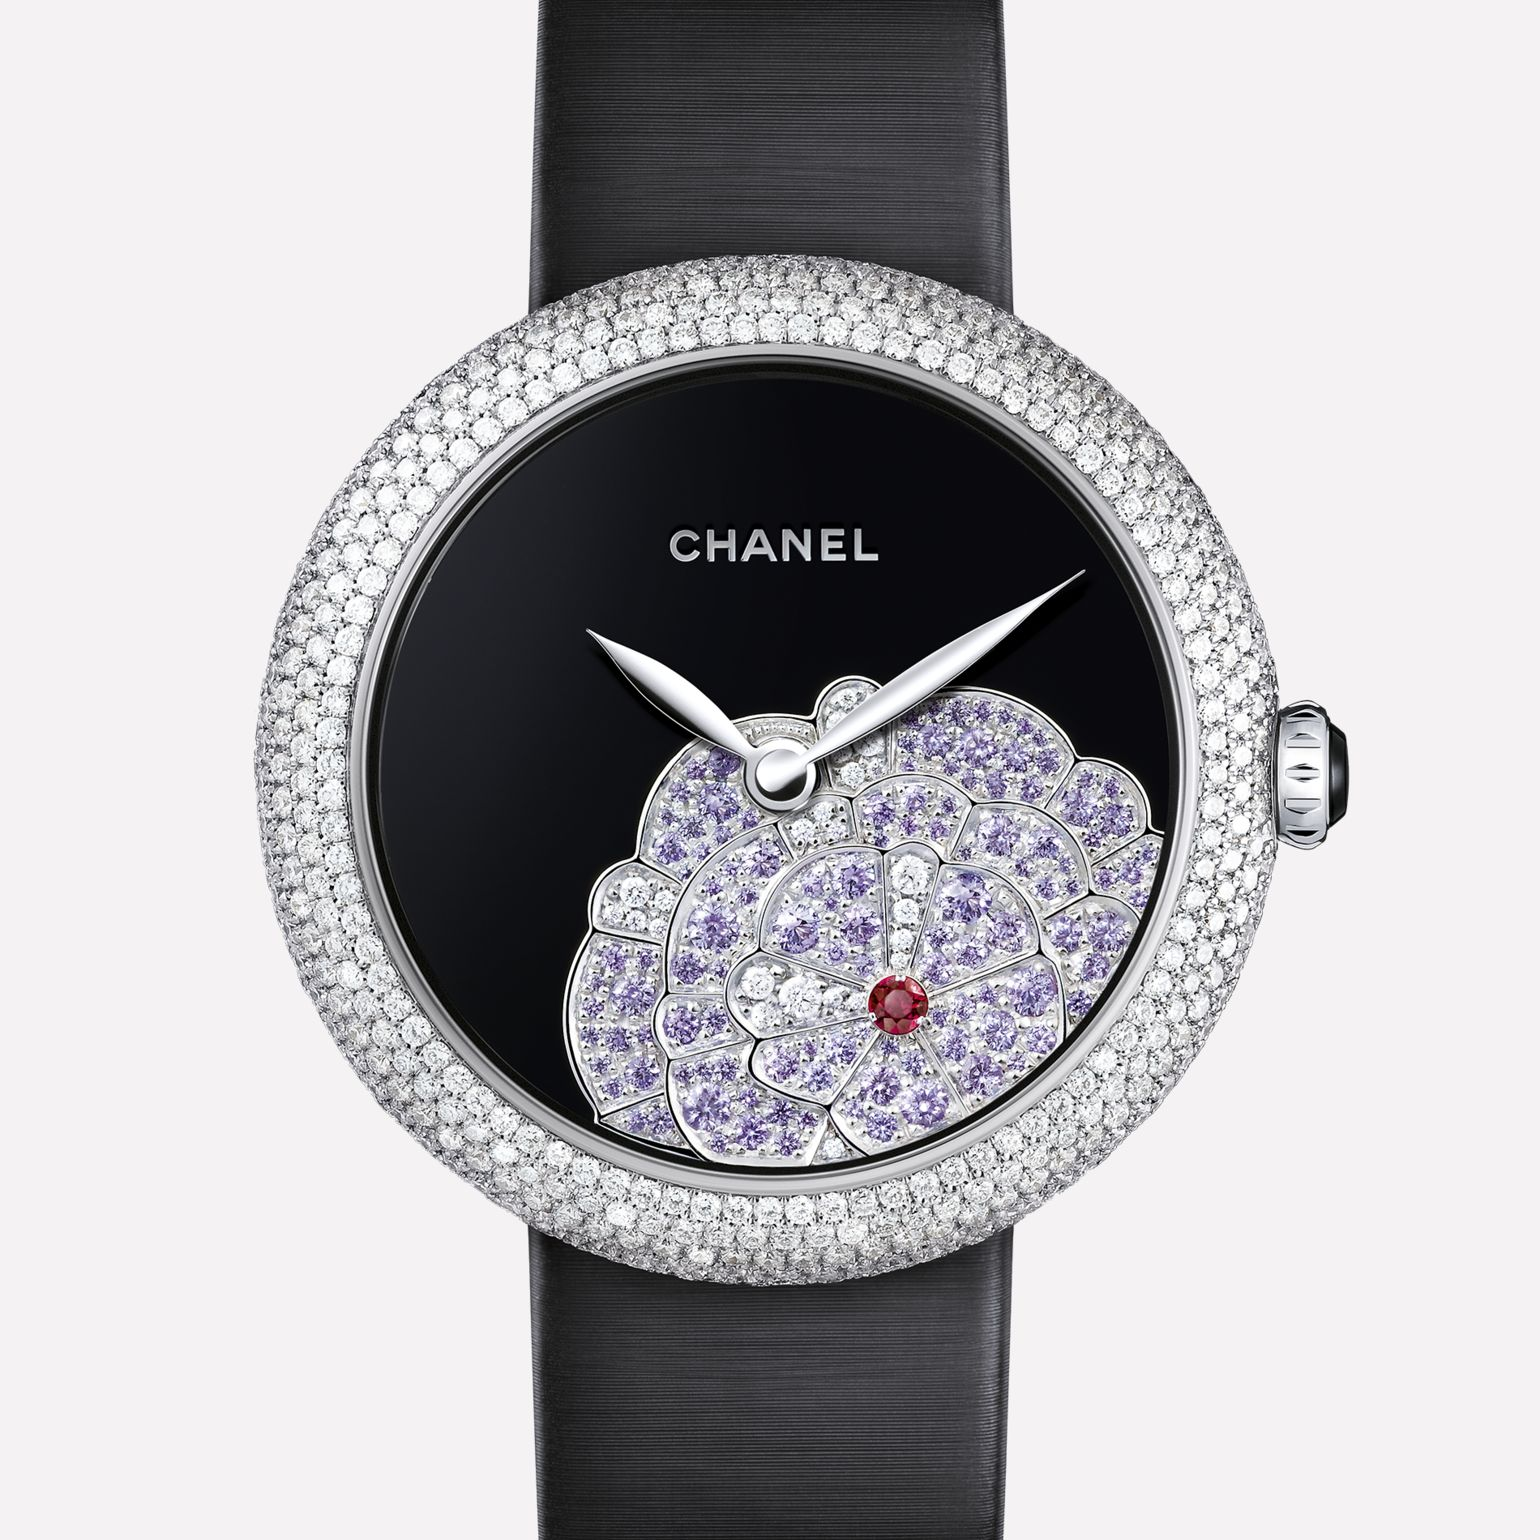 Mademoiselle Privé Watch Origami Camellia jewelry - Onyx, sapphires, diamonds, and rubies